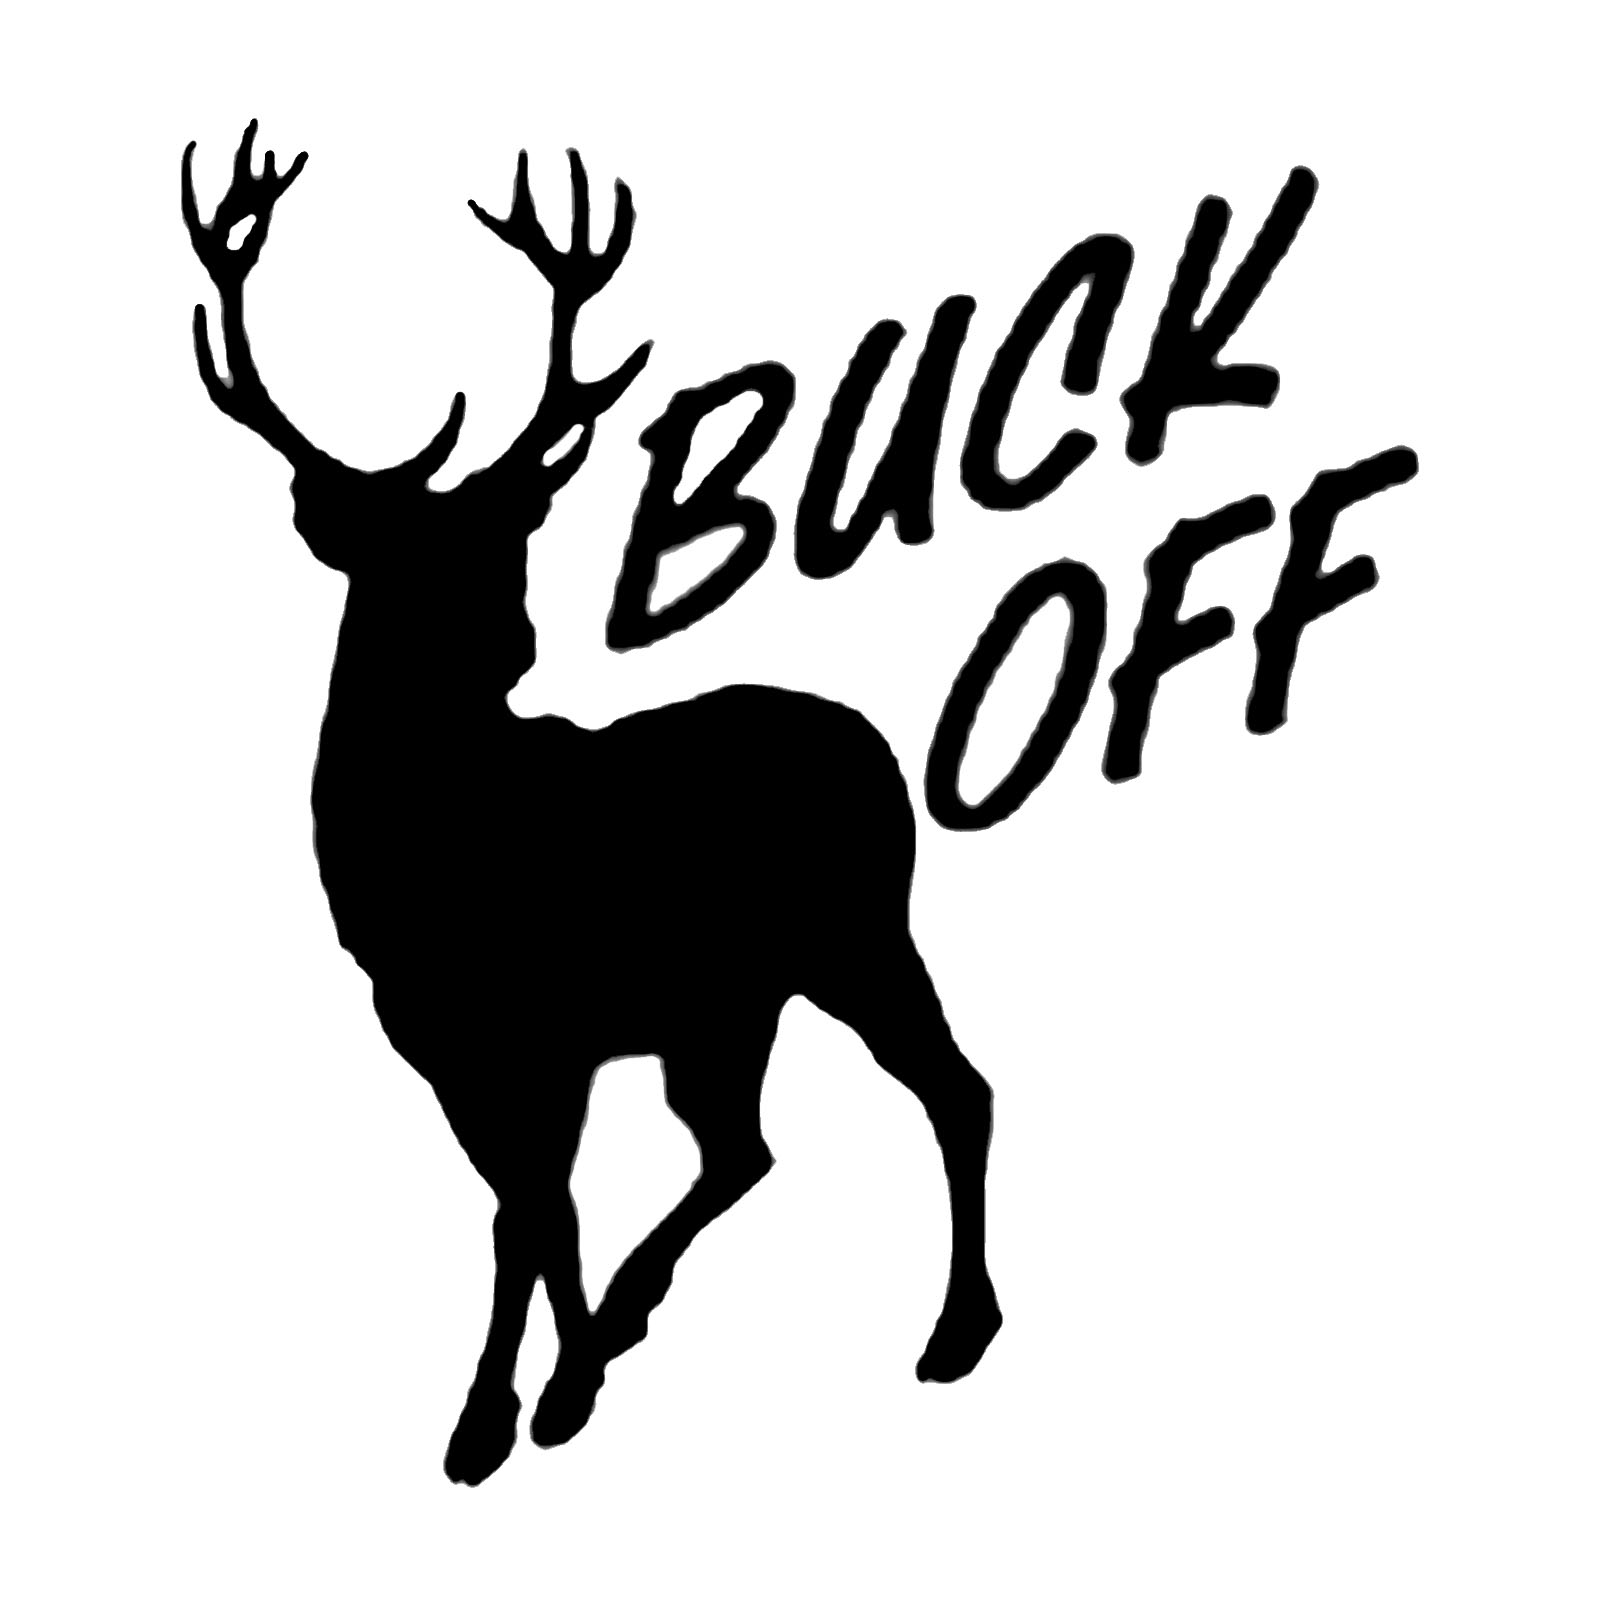 Free black and white clipart images deer hunting. Download best